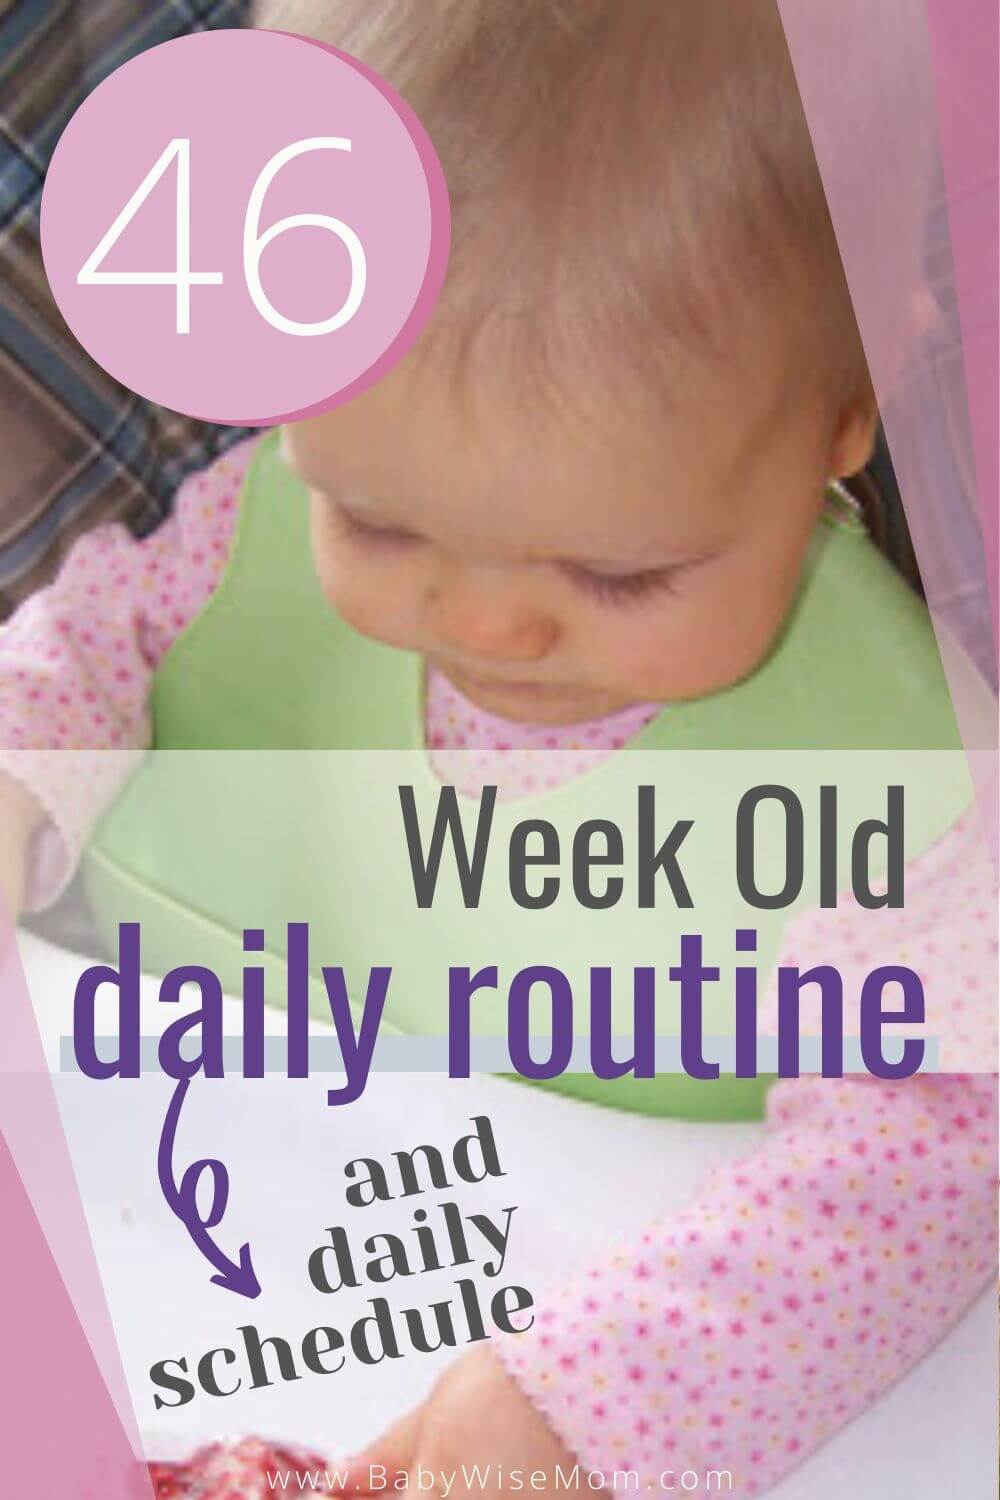 46 week old baby schedule pinnable image